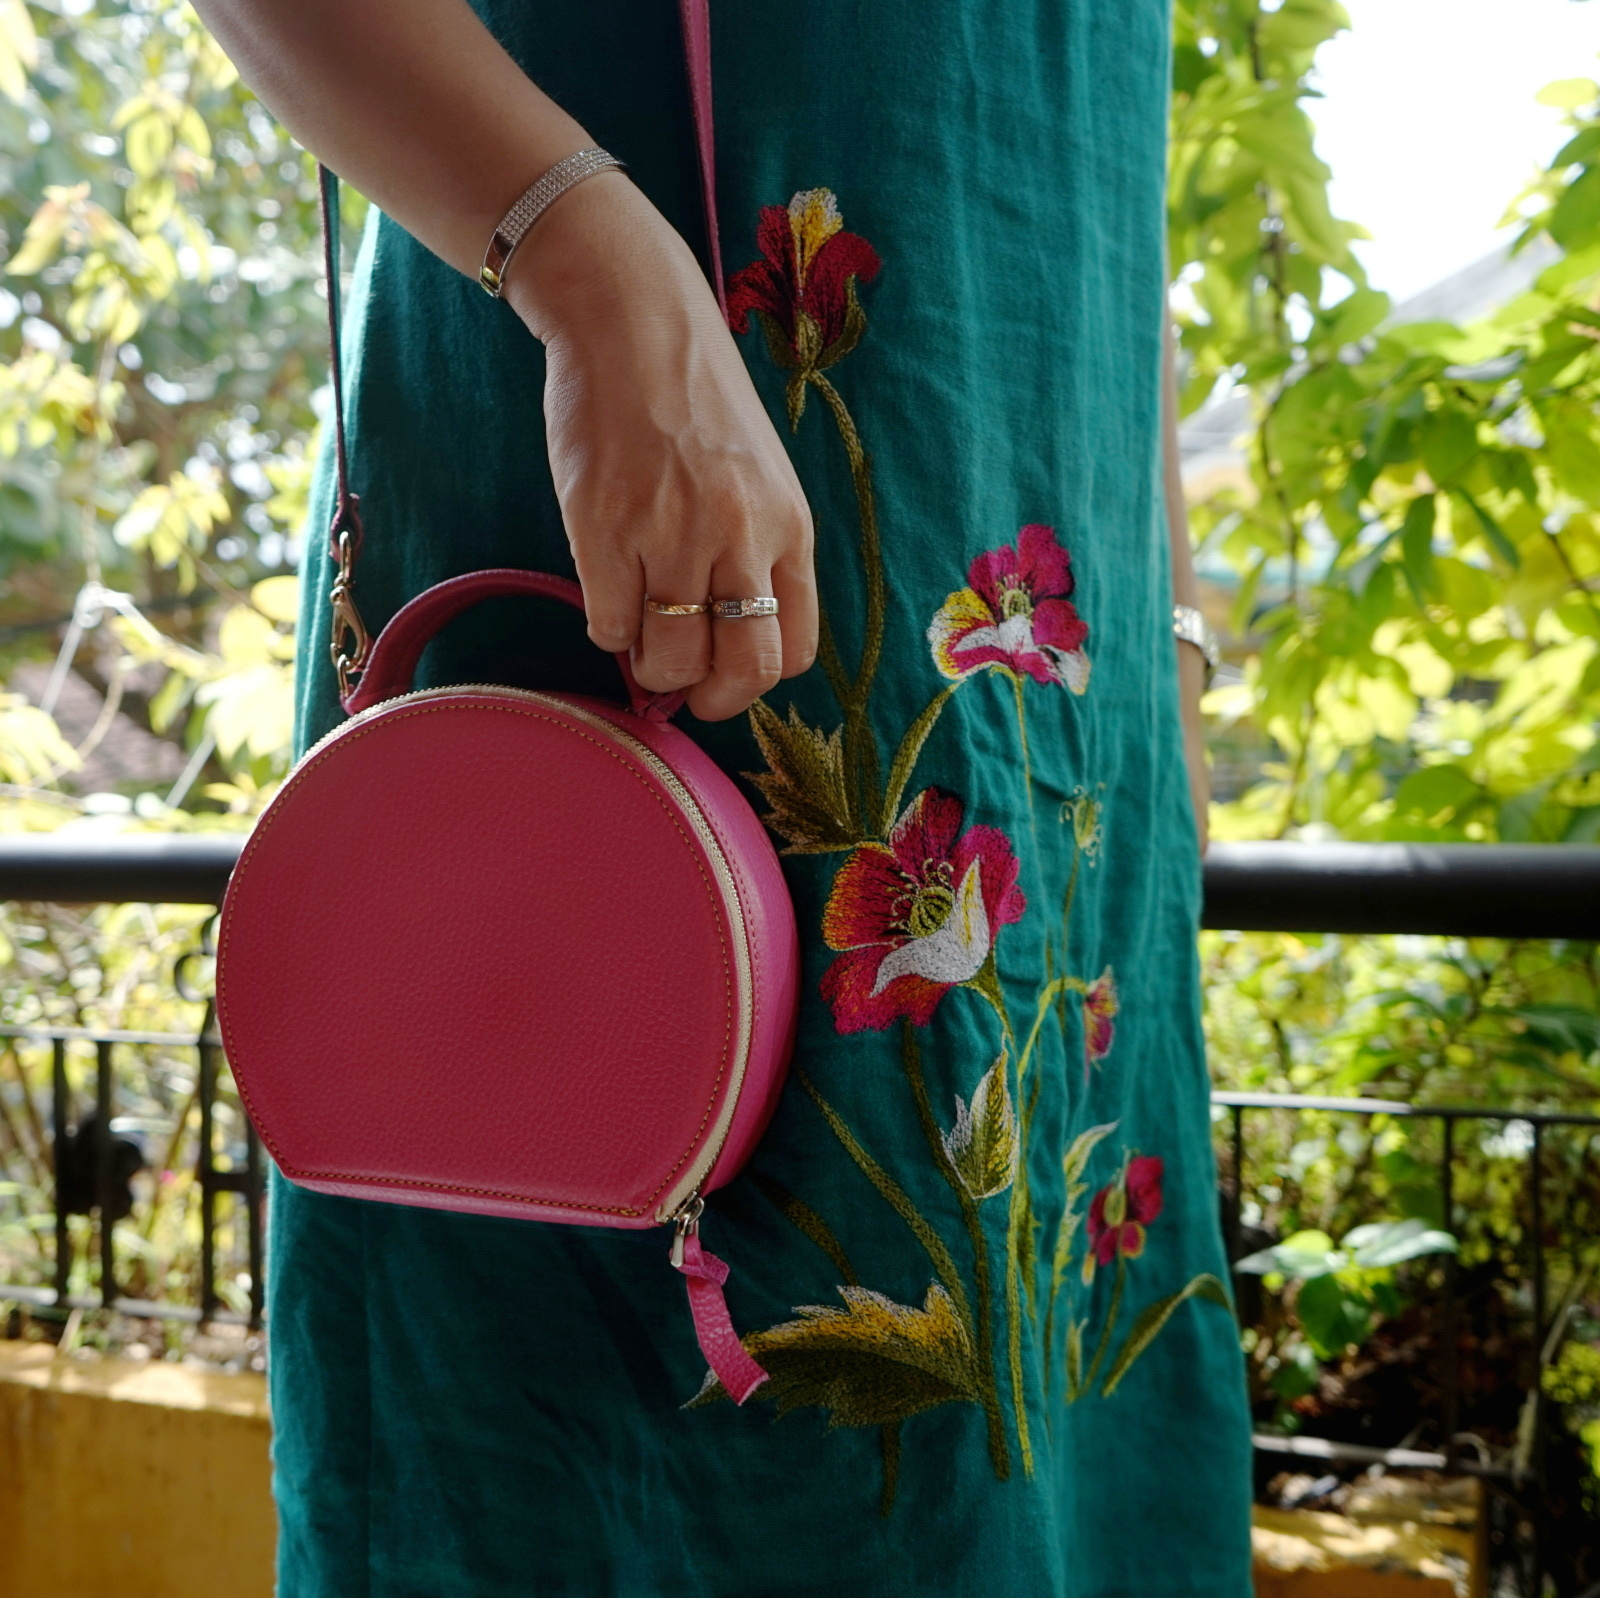 Hoi An Real Leather - Da Bao Real Leather: Leather bags - Pink fun drum bag